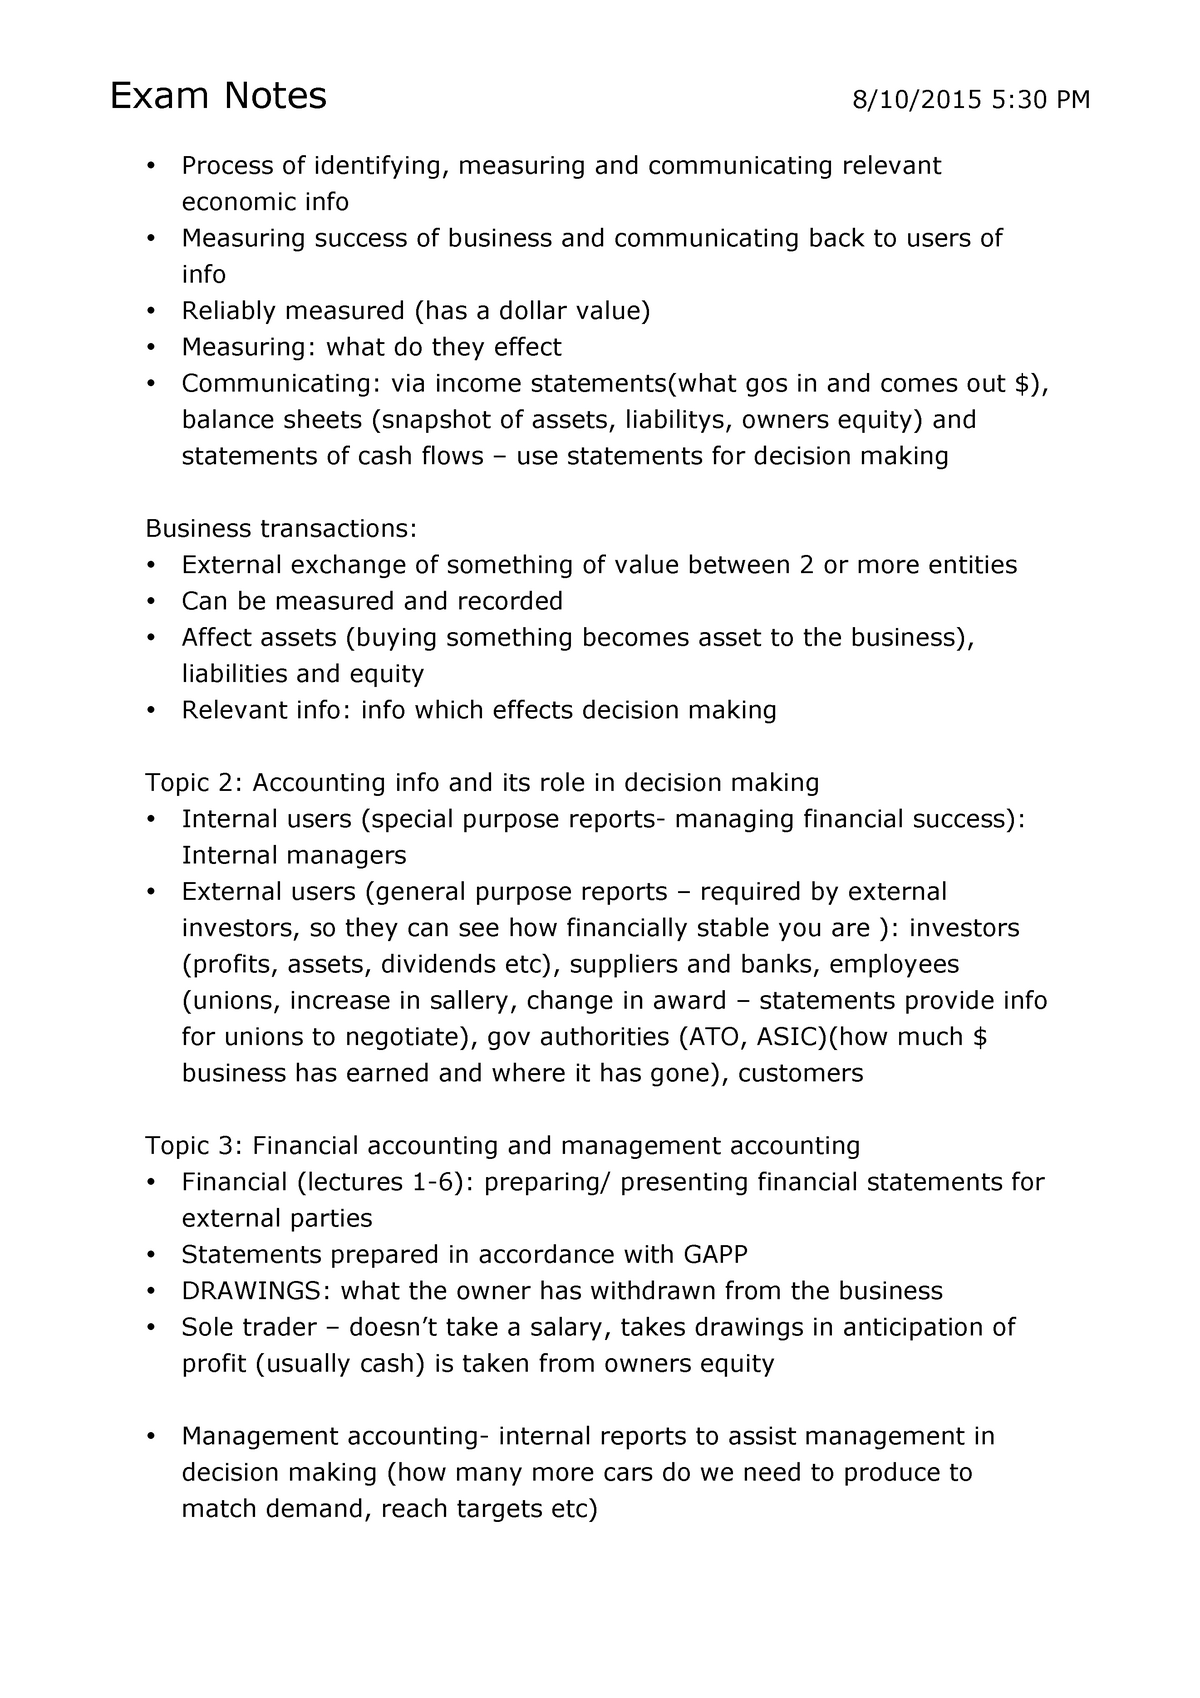 Accounting For Decision Making - Lecture notes, lectures 1